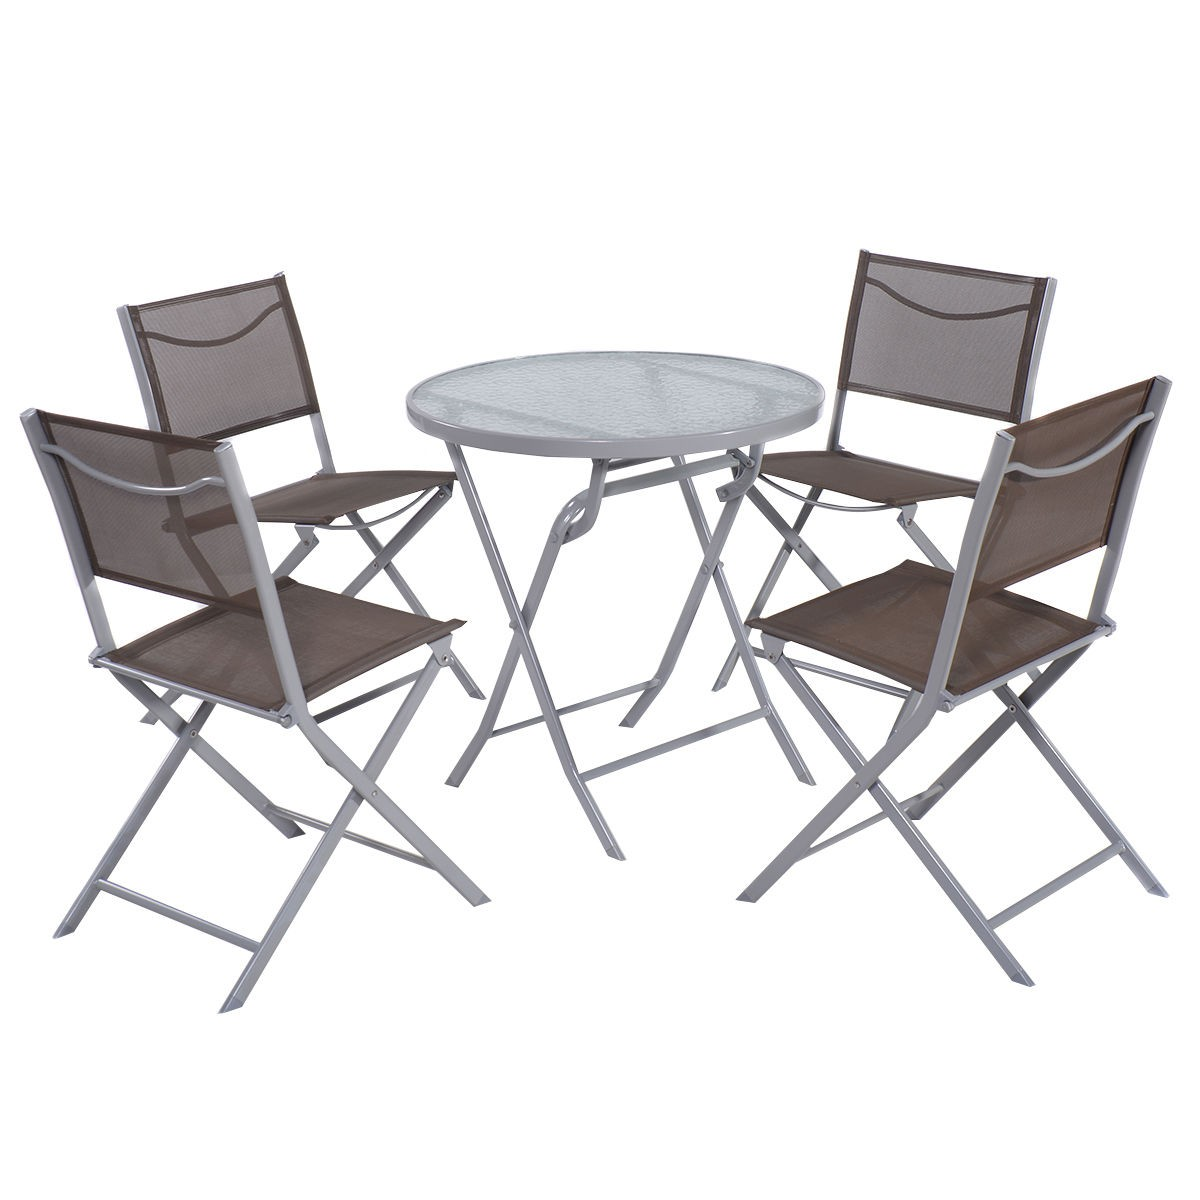 Bistro Set 4 Folding Chairs+Table Outdoor Patio Garden Furniture Textilene  5Pcs | EBay